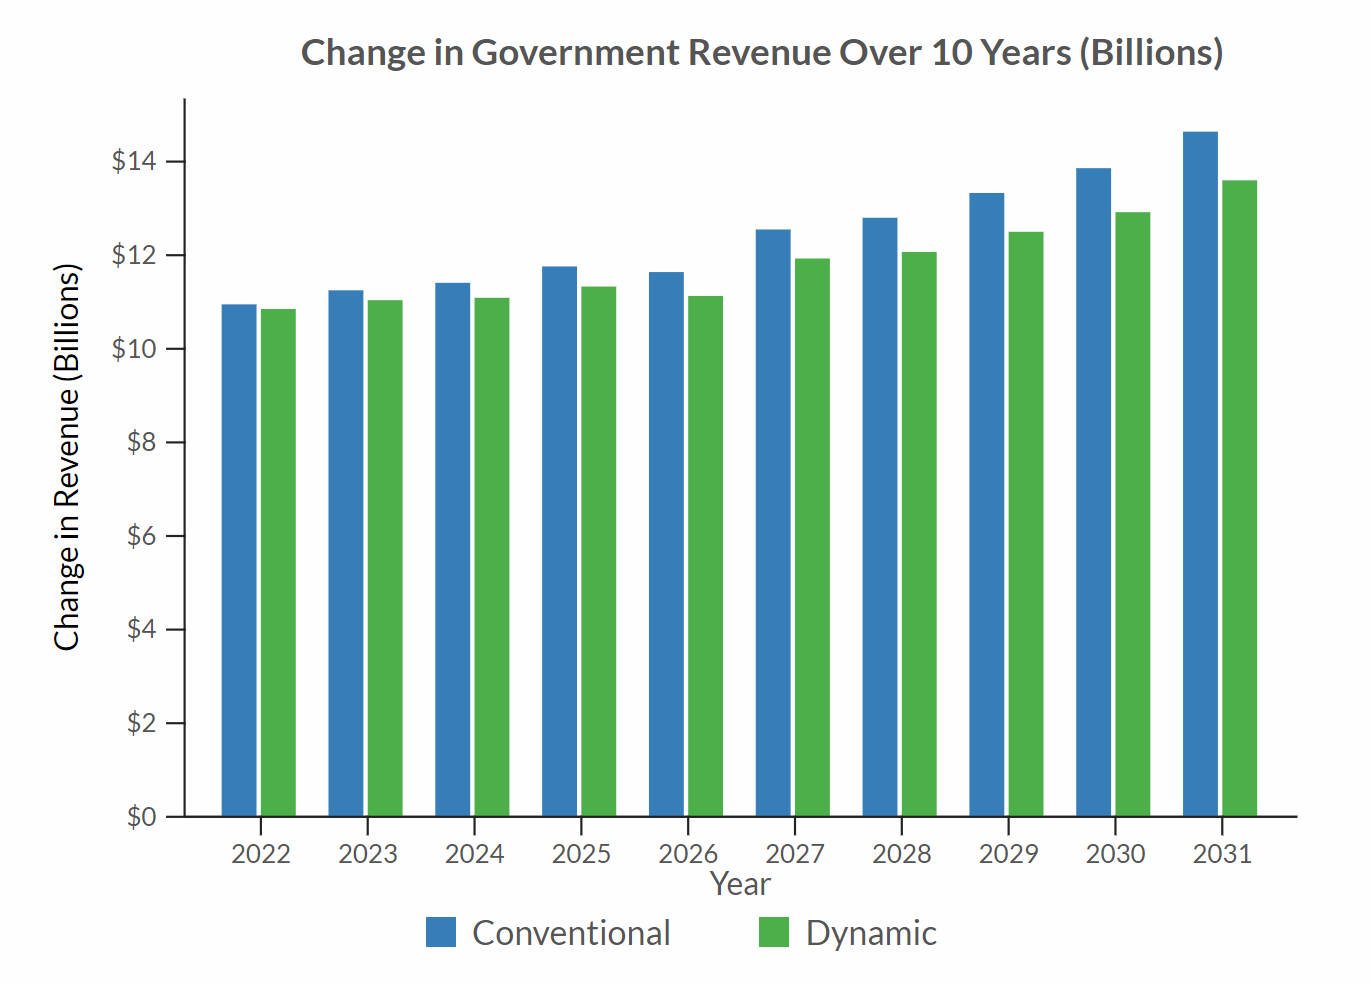 Change in Government Revenue Over 10 Years (Billions)